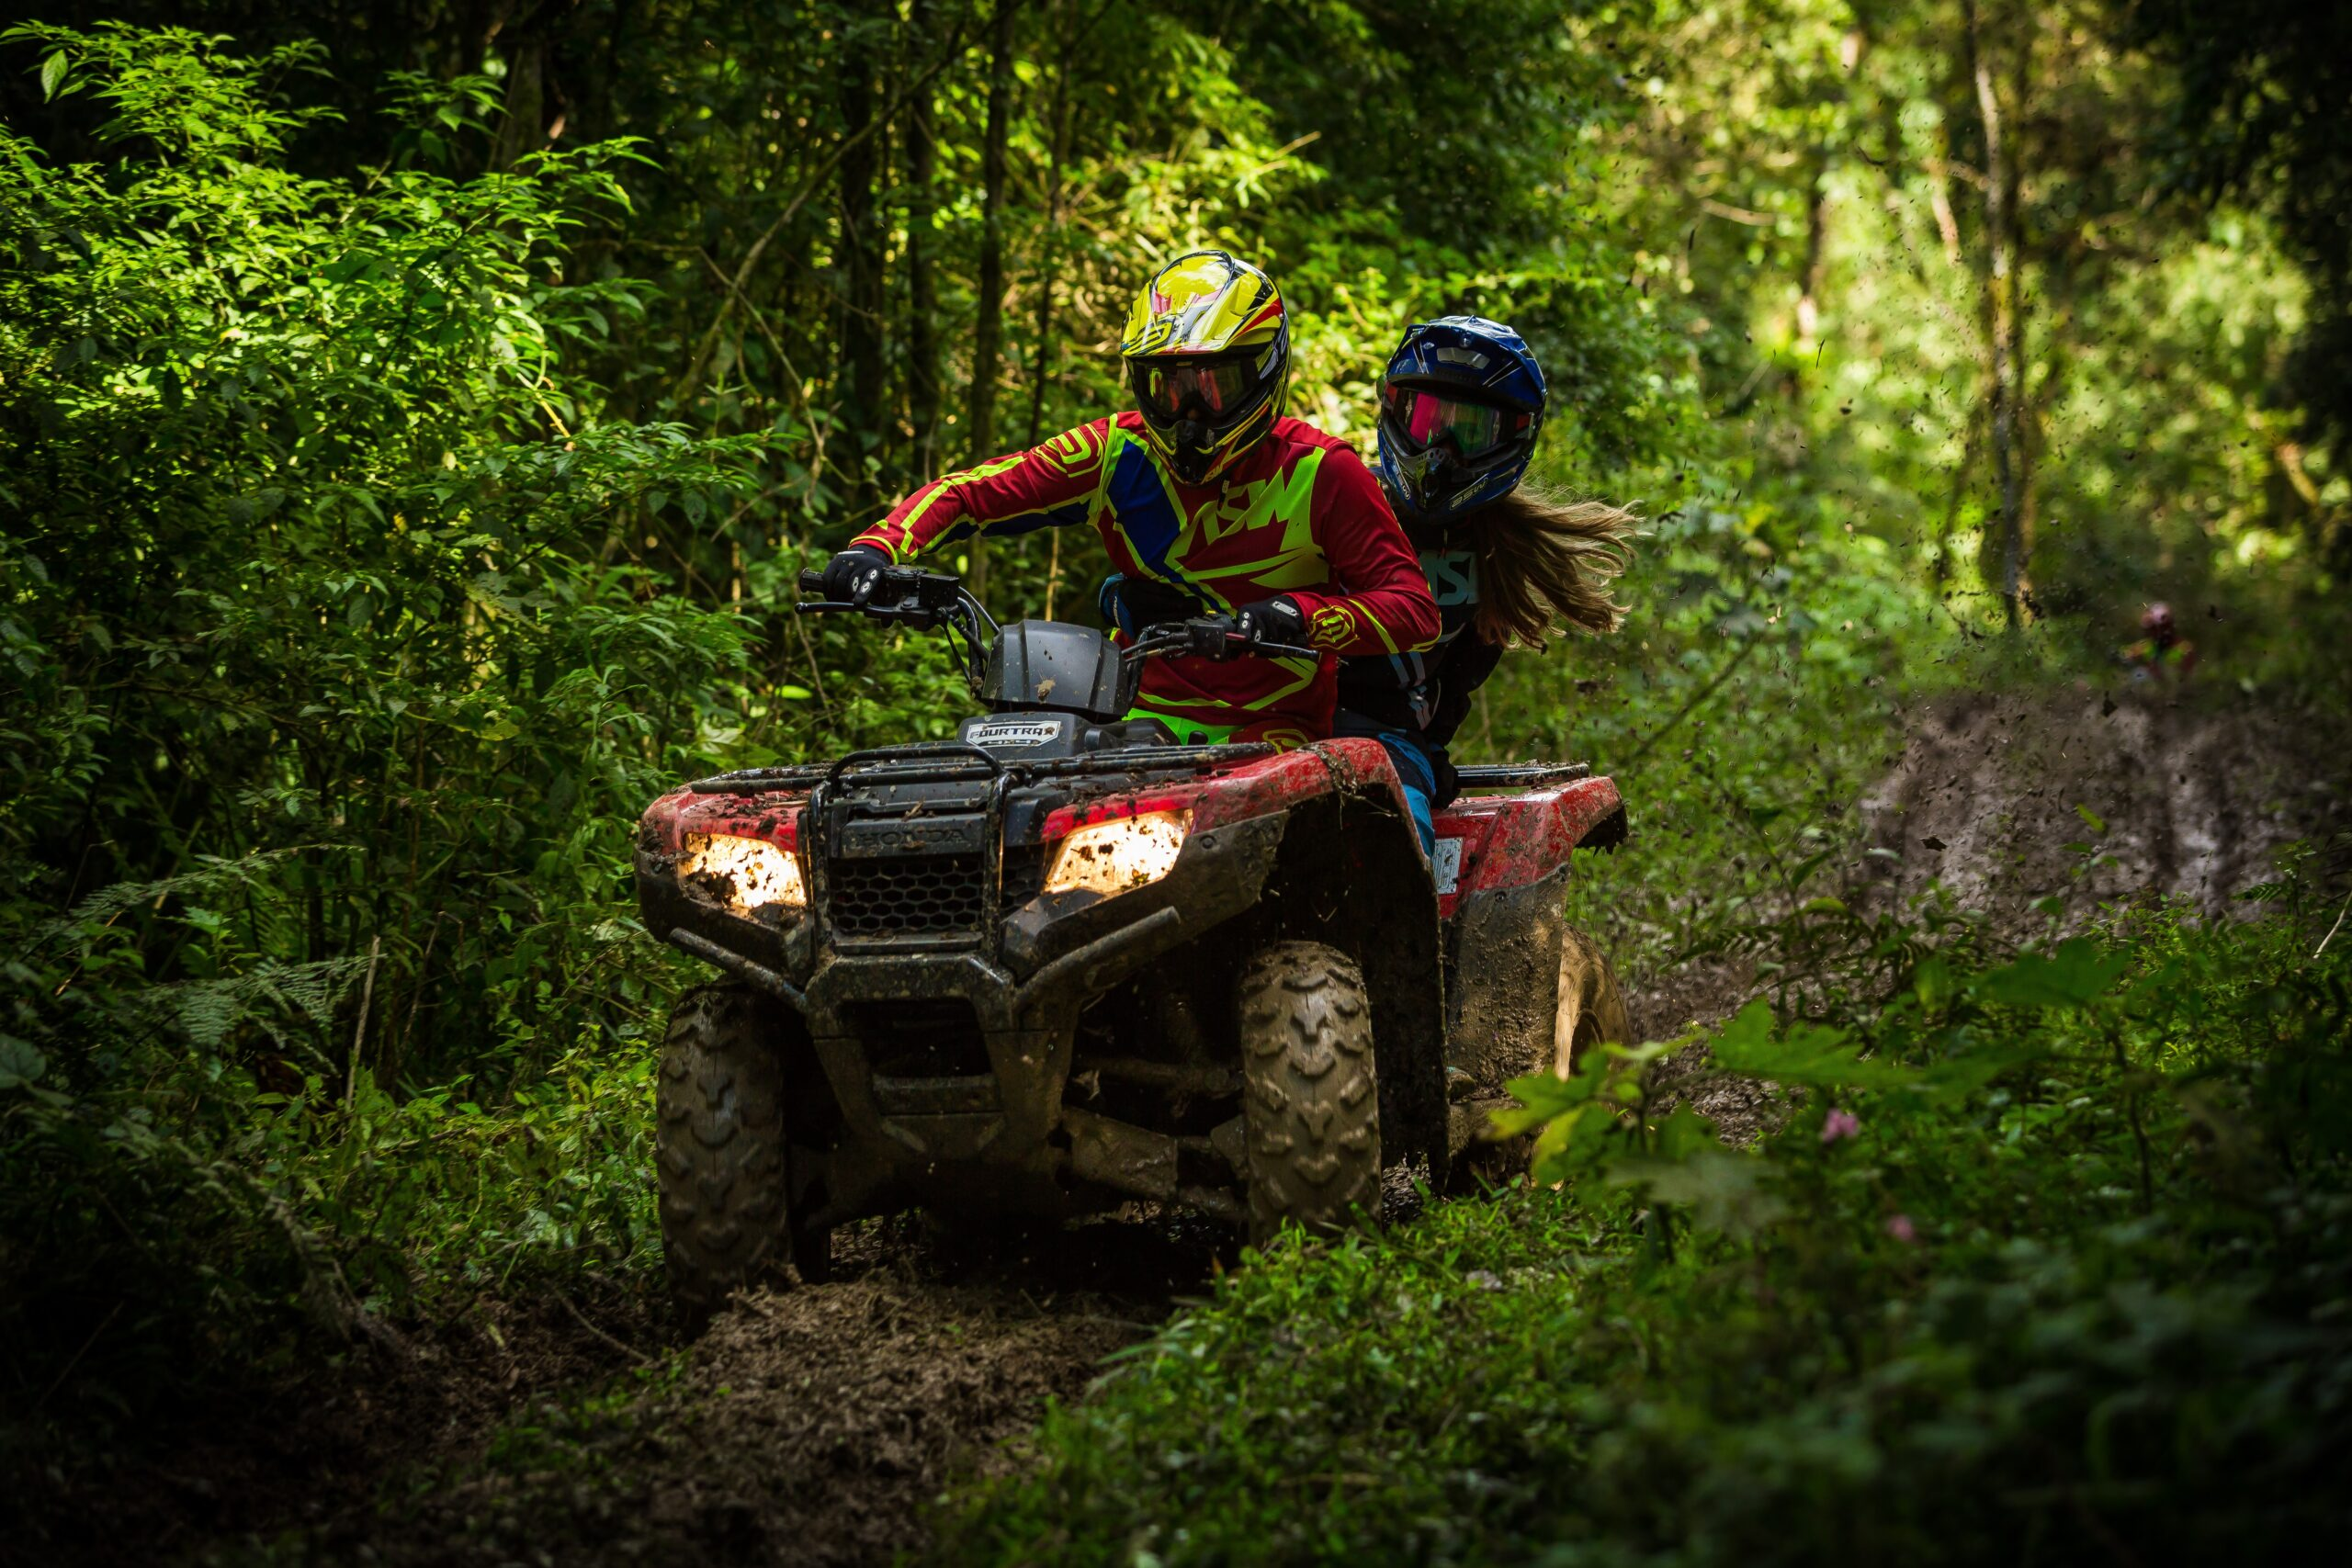 Trail ATV riding